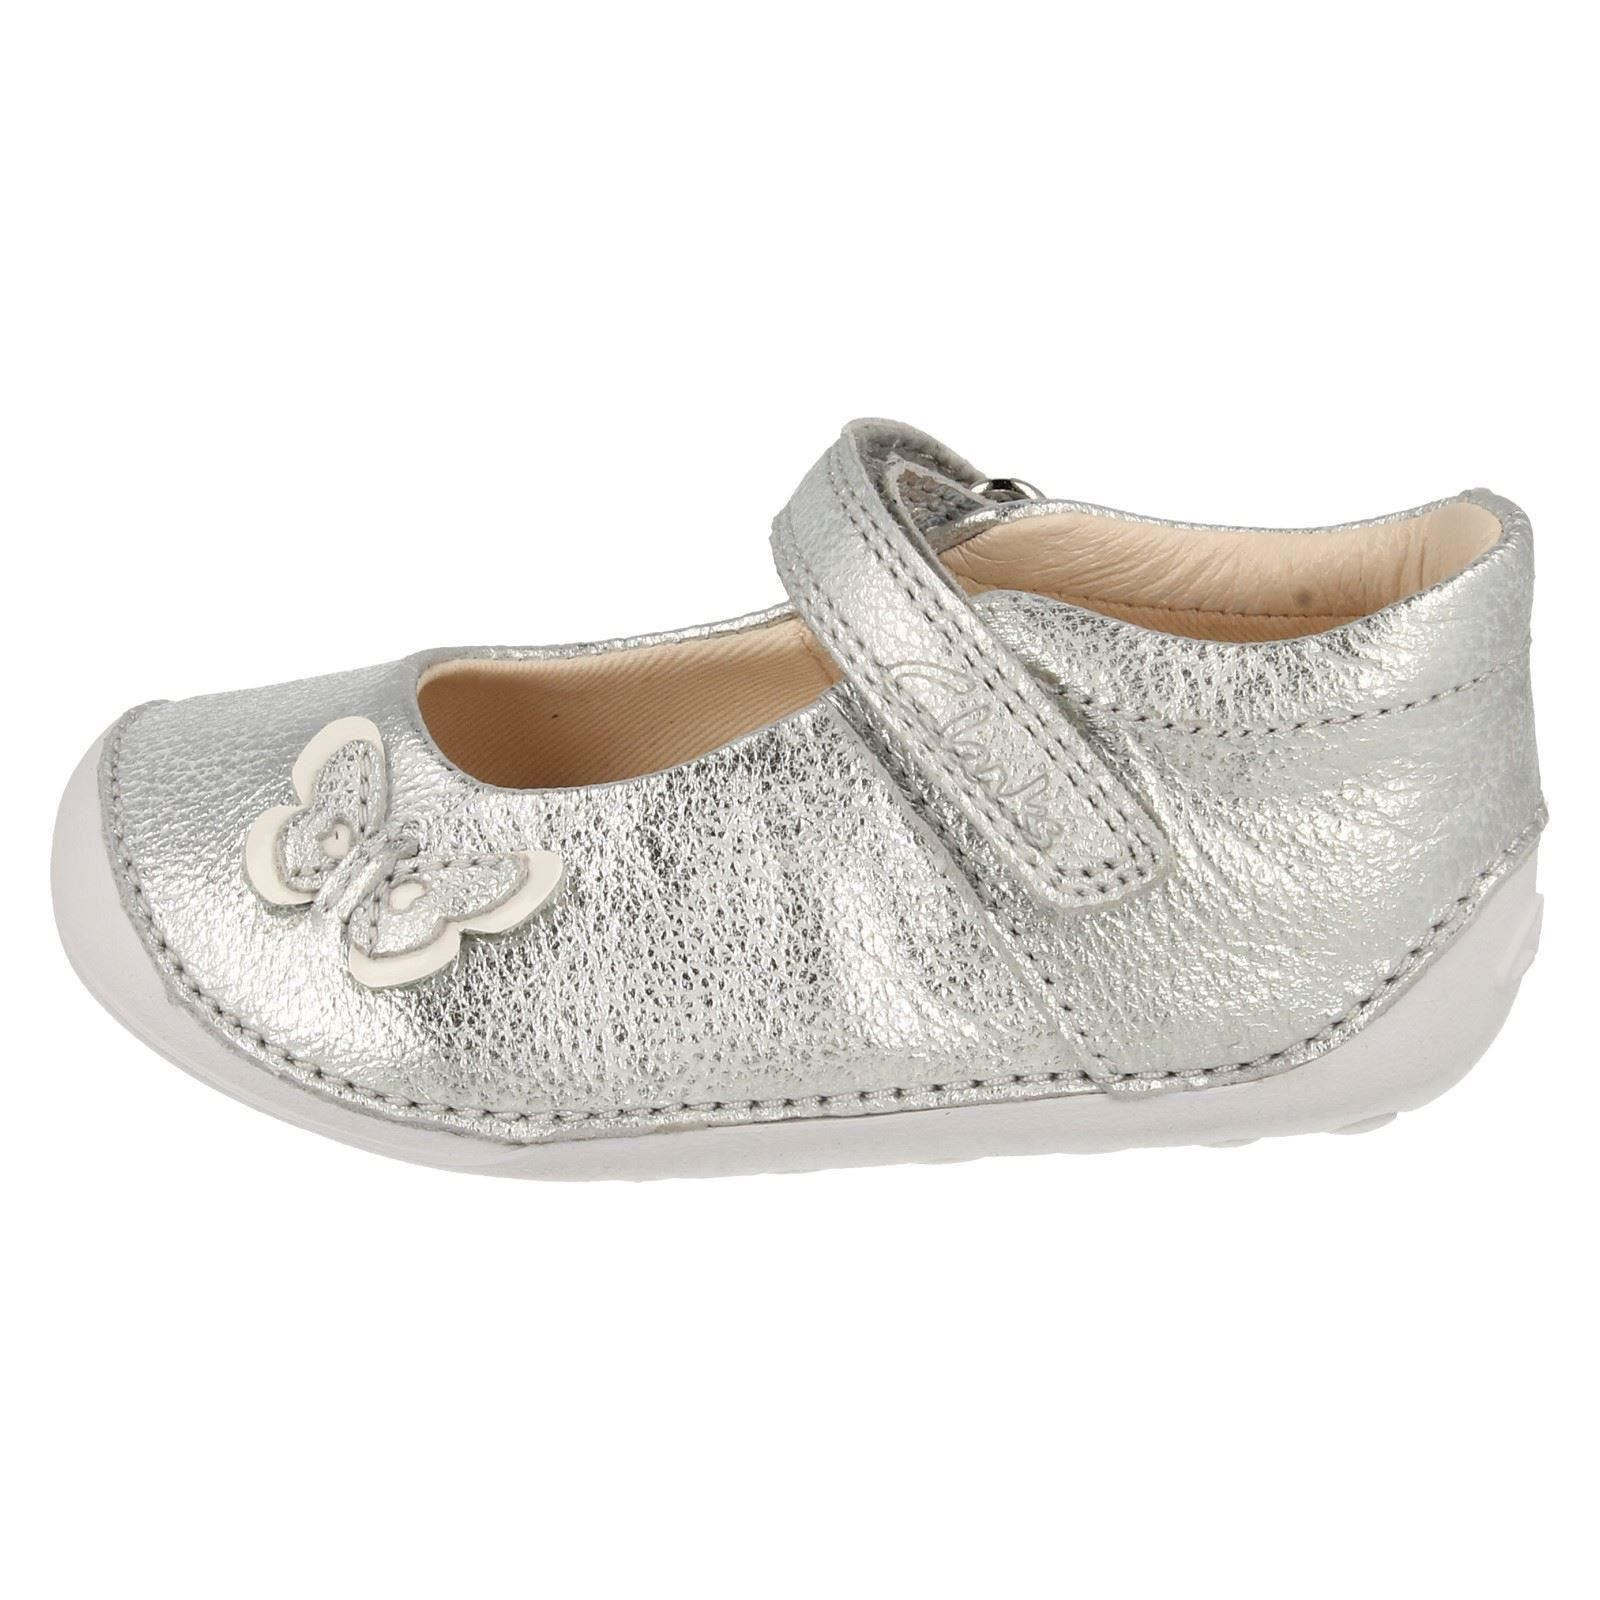 Find great deals on eBay for girls first step shoes. Shop with confidence.